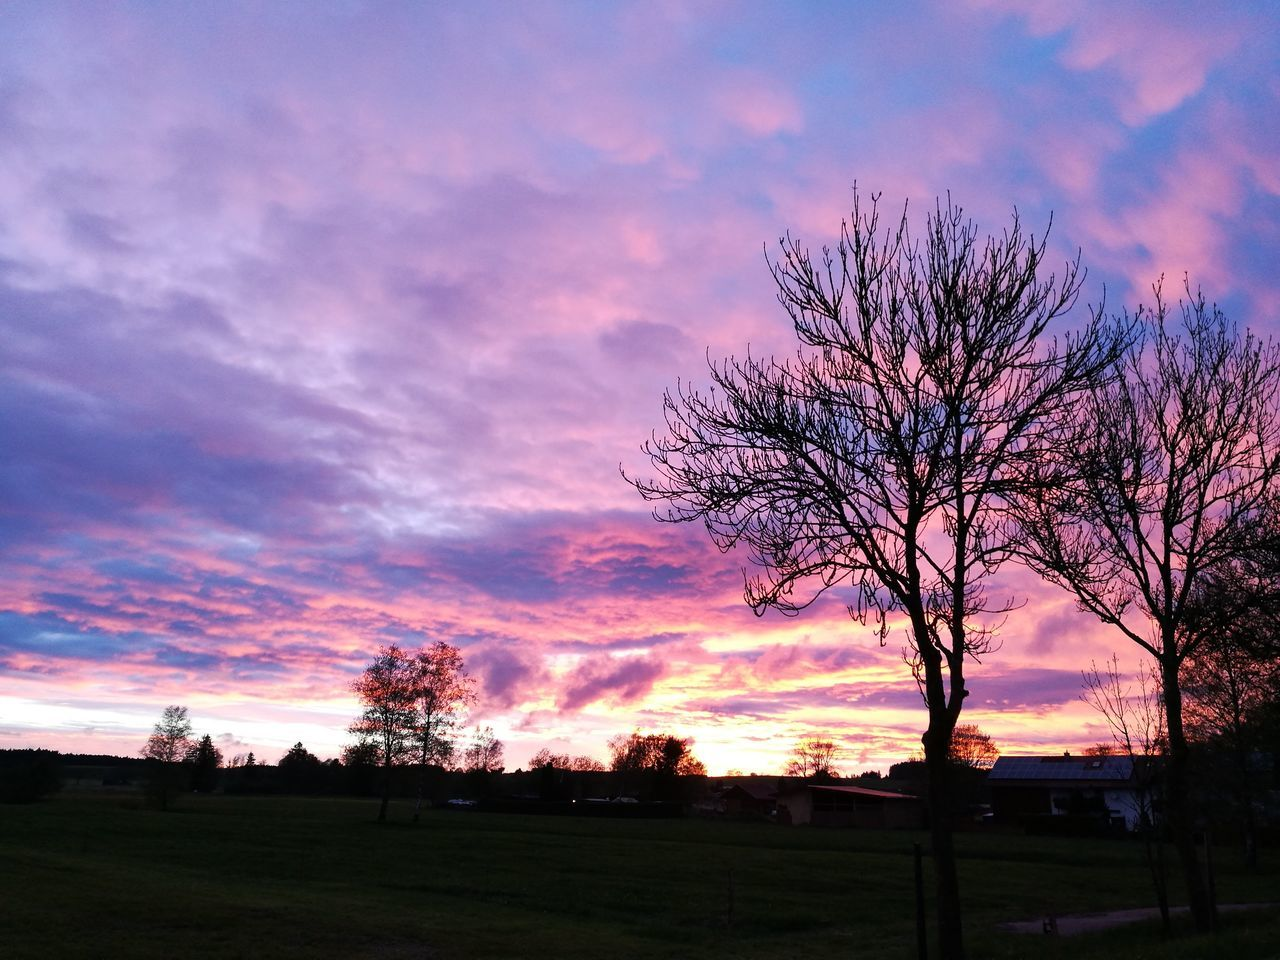 silhouette, sunset, beauty in nature, scenics, tranquil scene, sky, bare tree, nature, tranquility, tree, landscape, cloud - sky, no people, outdoors, day